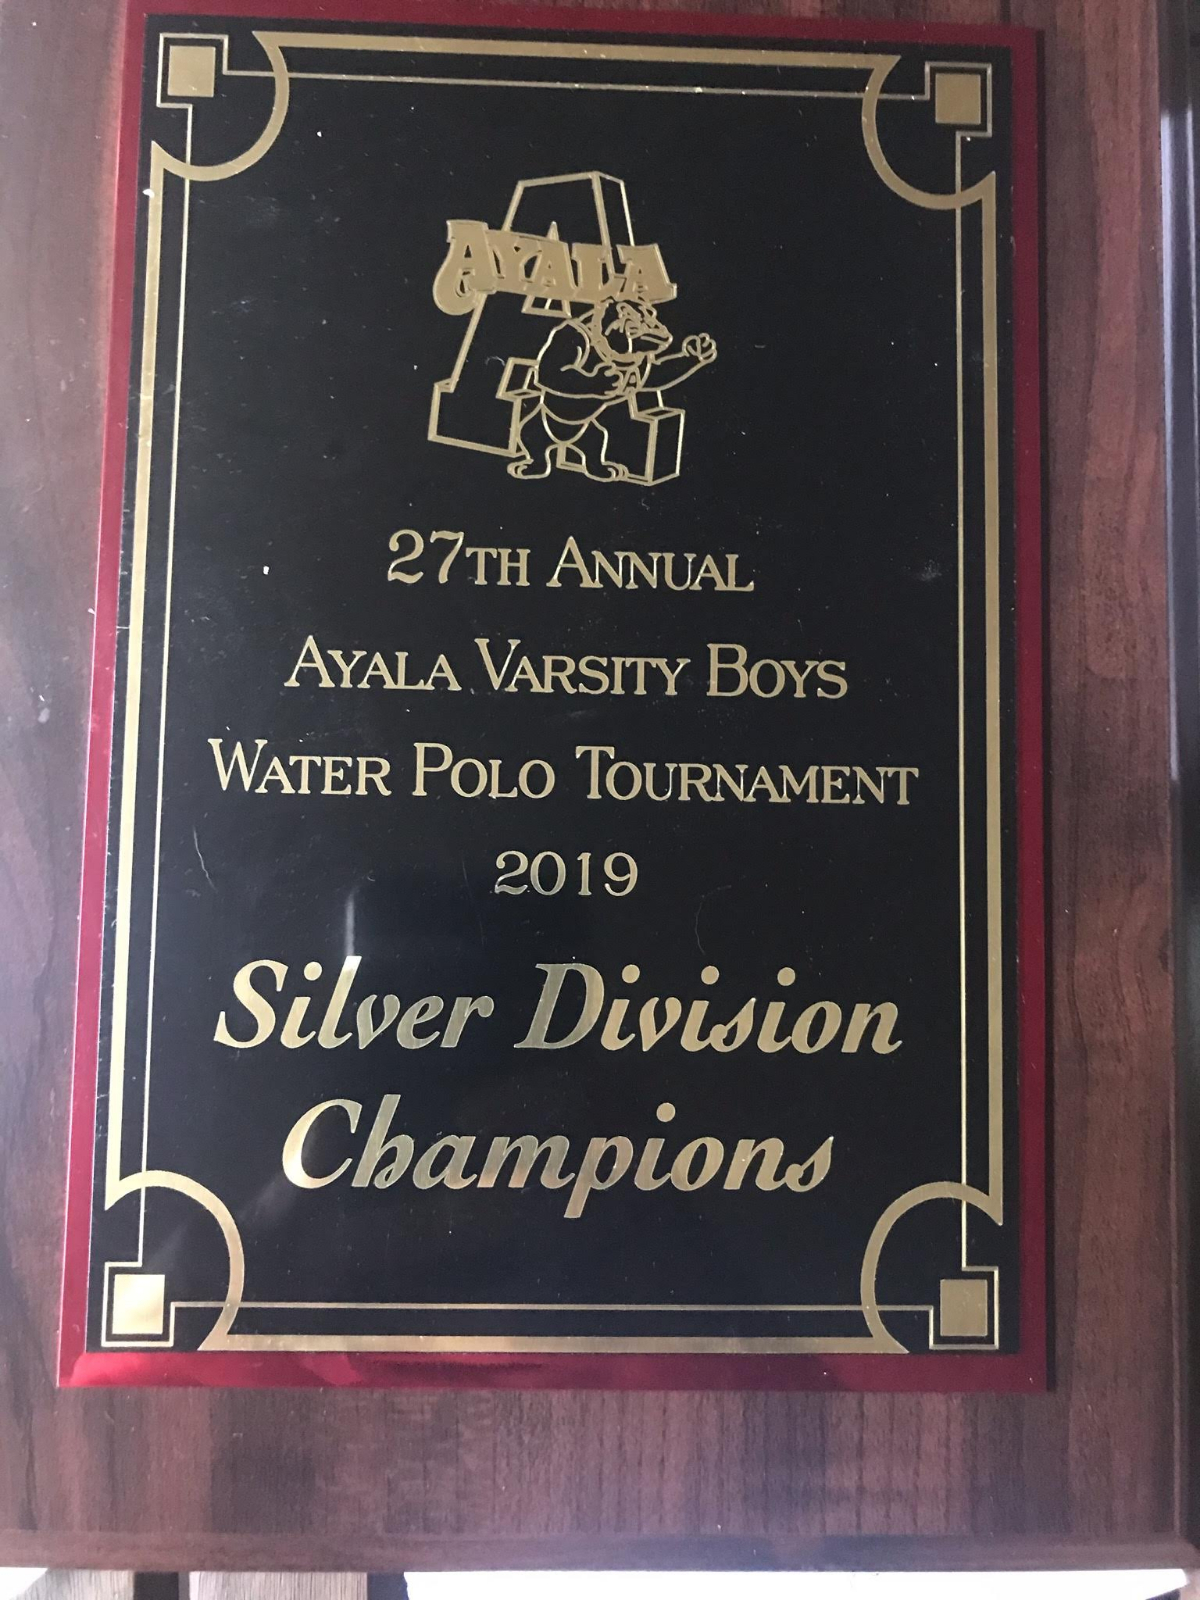 Boys Water Polo wins Silver Division at Ayala Tournament